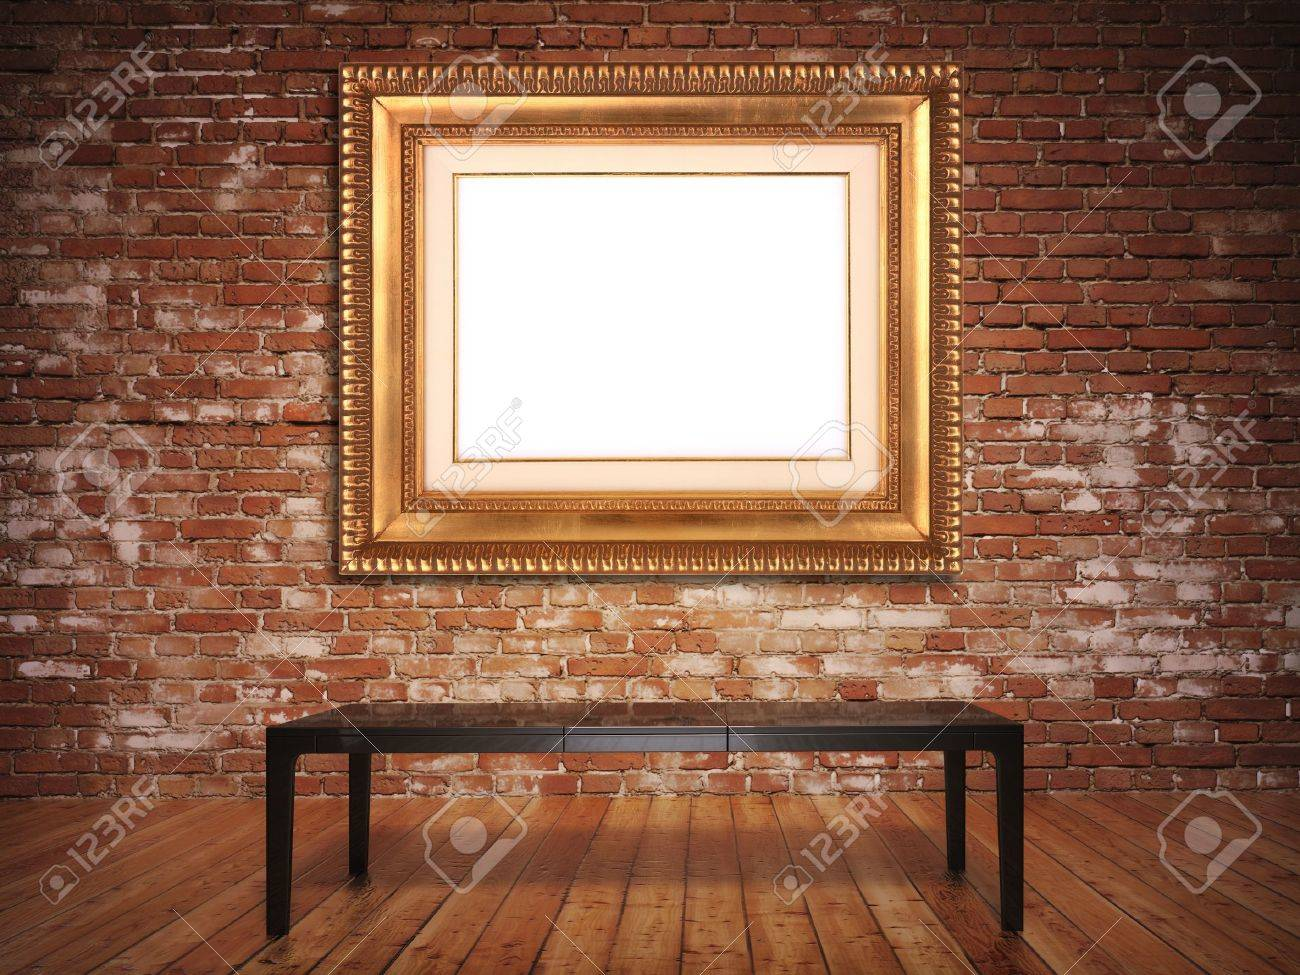 Elegant frame with a rustic background. Frame is blank to insert picture or text. Stock Photo - 11641405